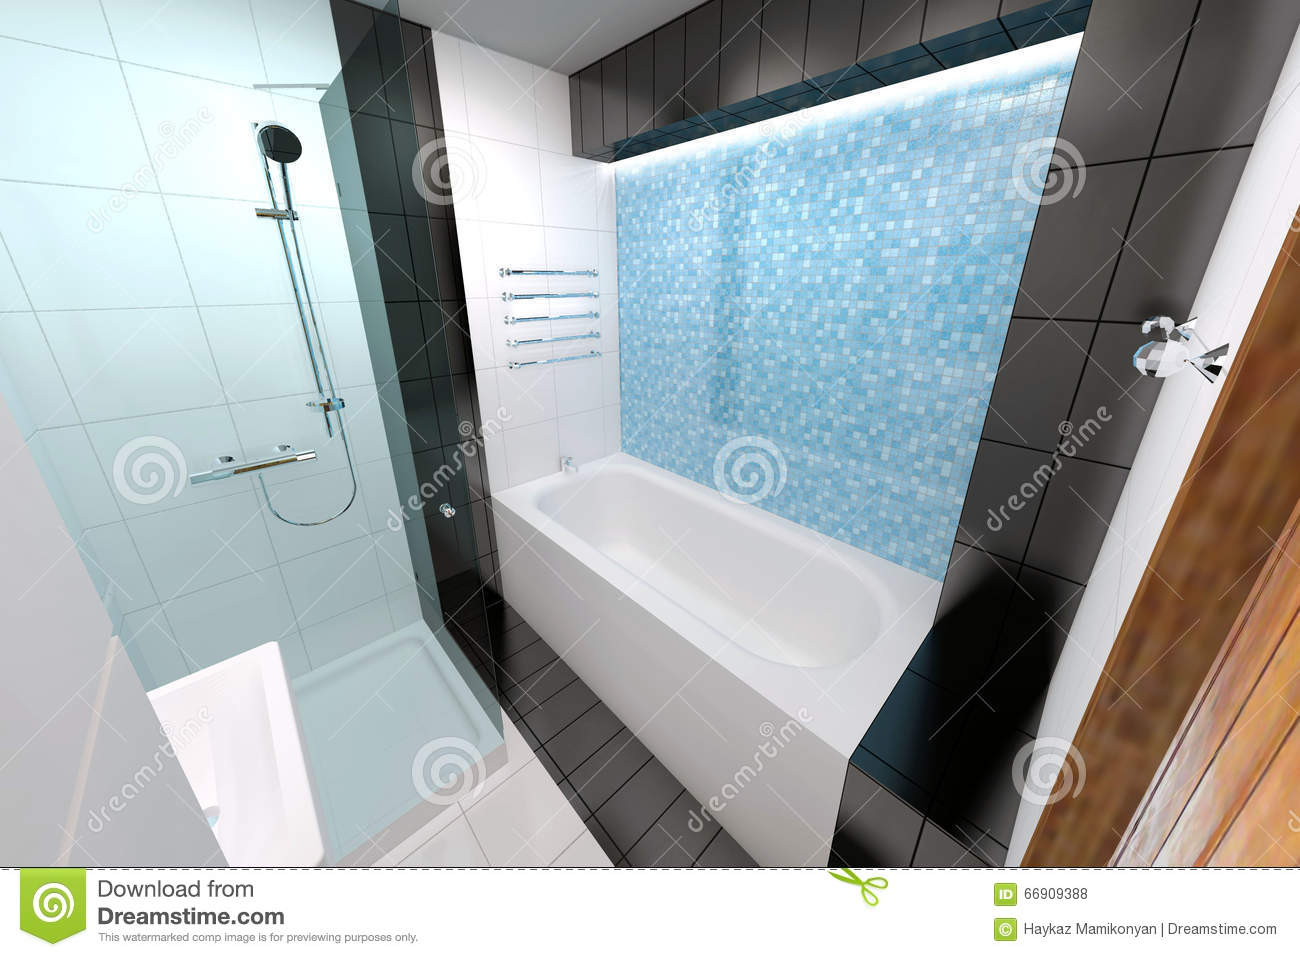 Bathroom Interior Design Stock Illustration Illustration Of Adobe - Bathroom remodel program free